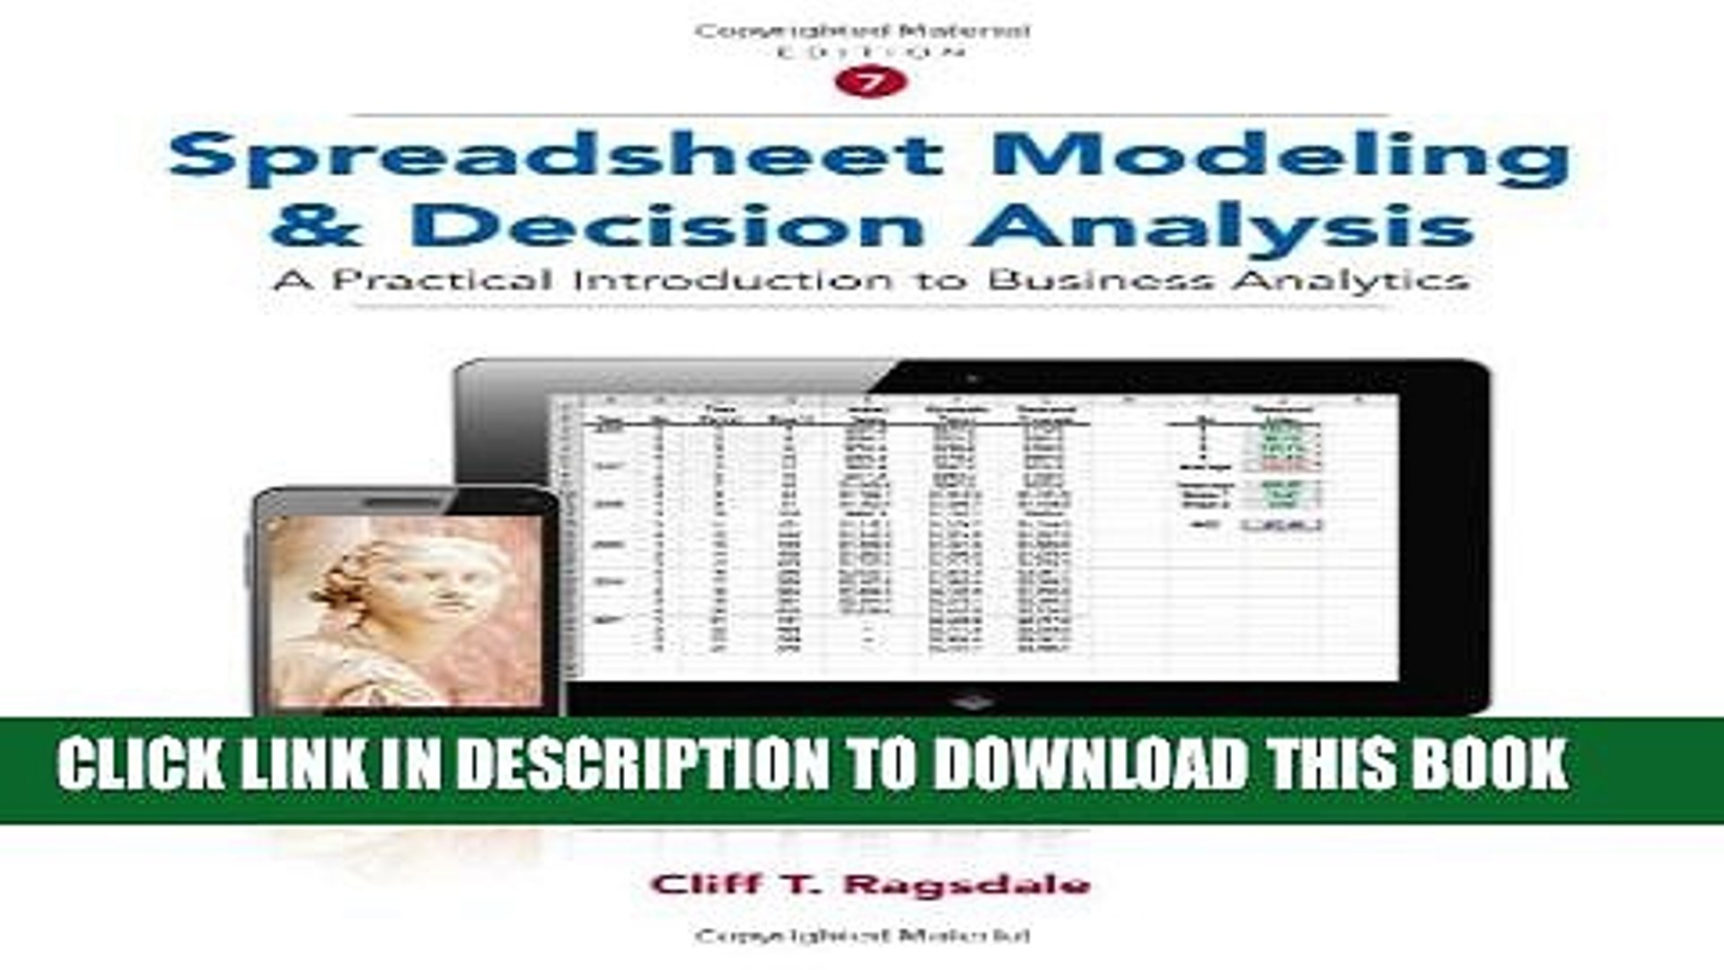 Spreadsheet Modeling And Decision Analysis 8Th Edition Solutions For Spreadsheet Modeling And Decision Analysis How To Make A Spreadsheet